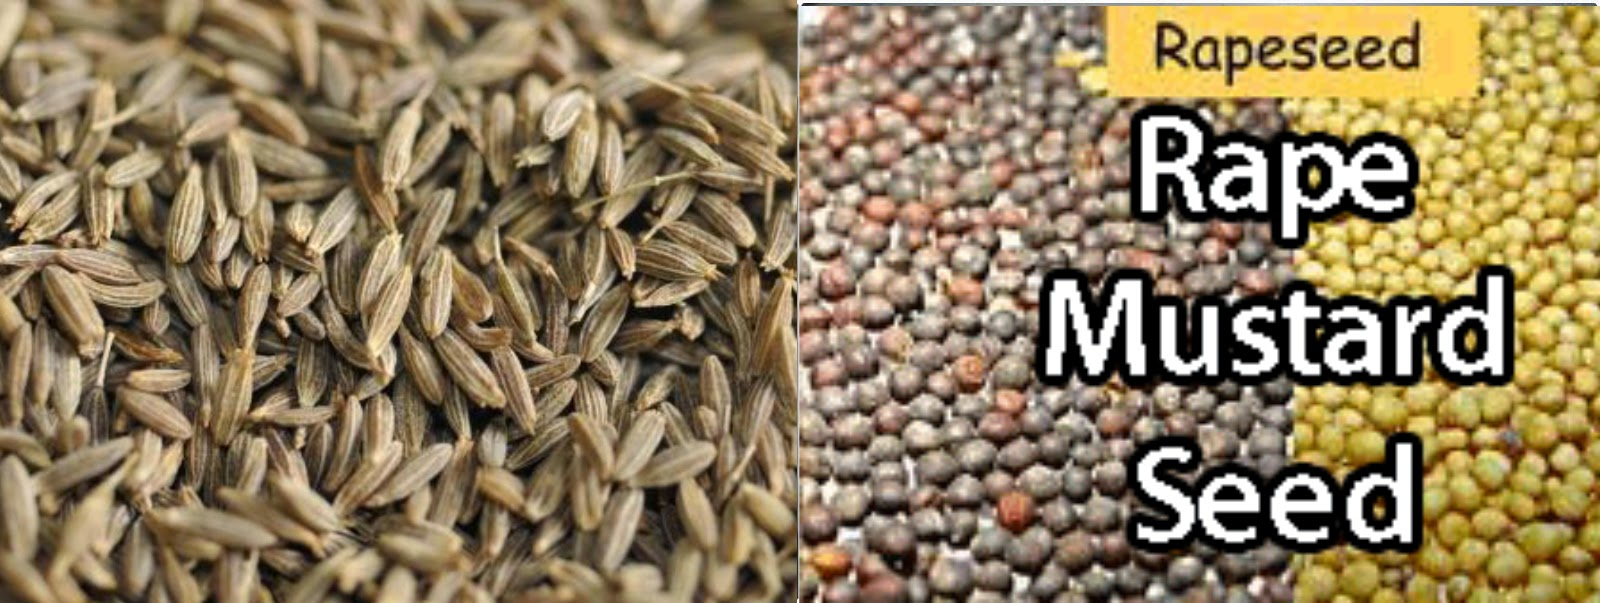 Agri Commodity Tips , Best NCDEX Tips Provider , Agri Commodity Trading , Agri Trading Tips , RM Seed Tips